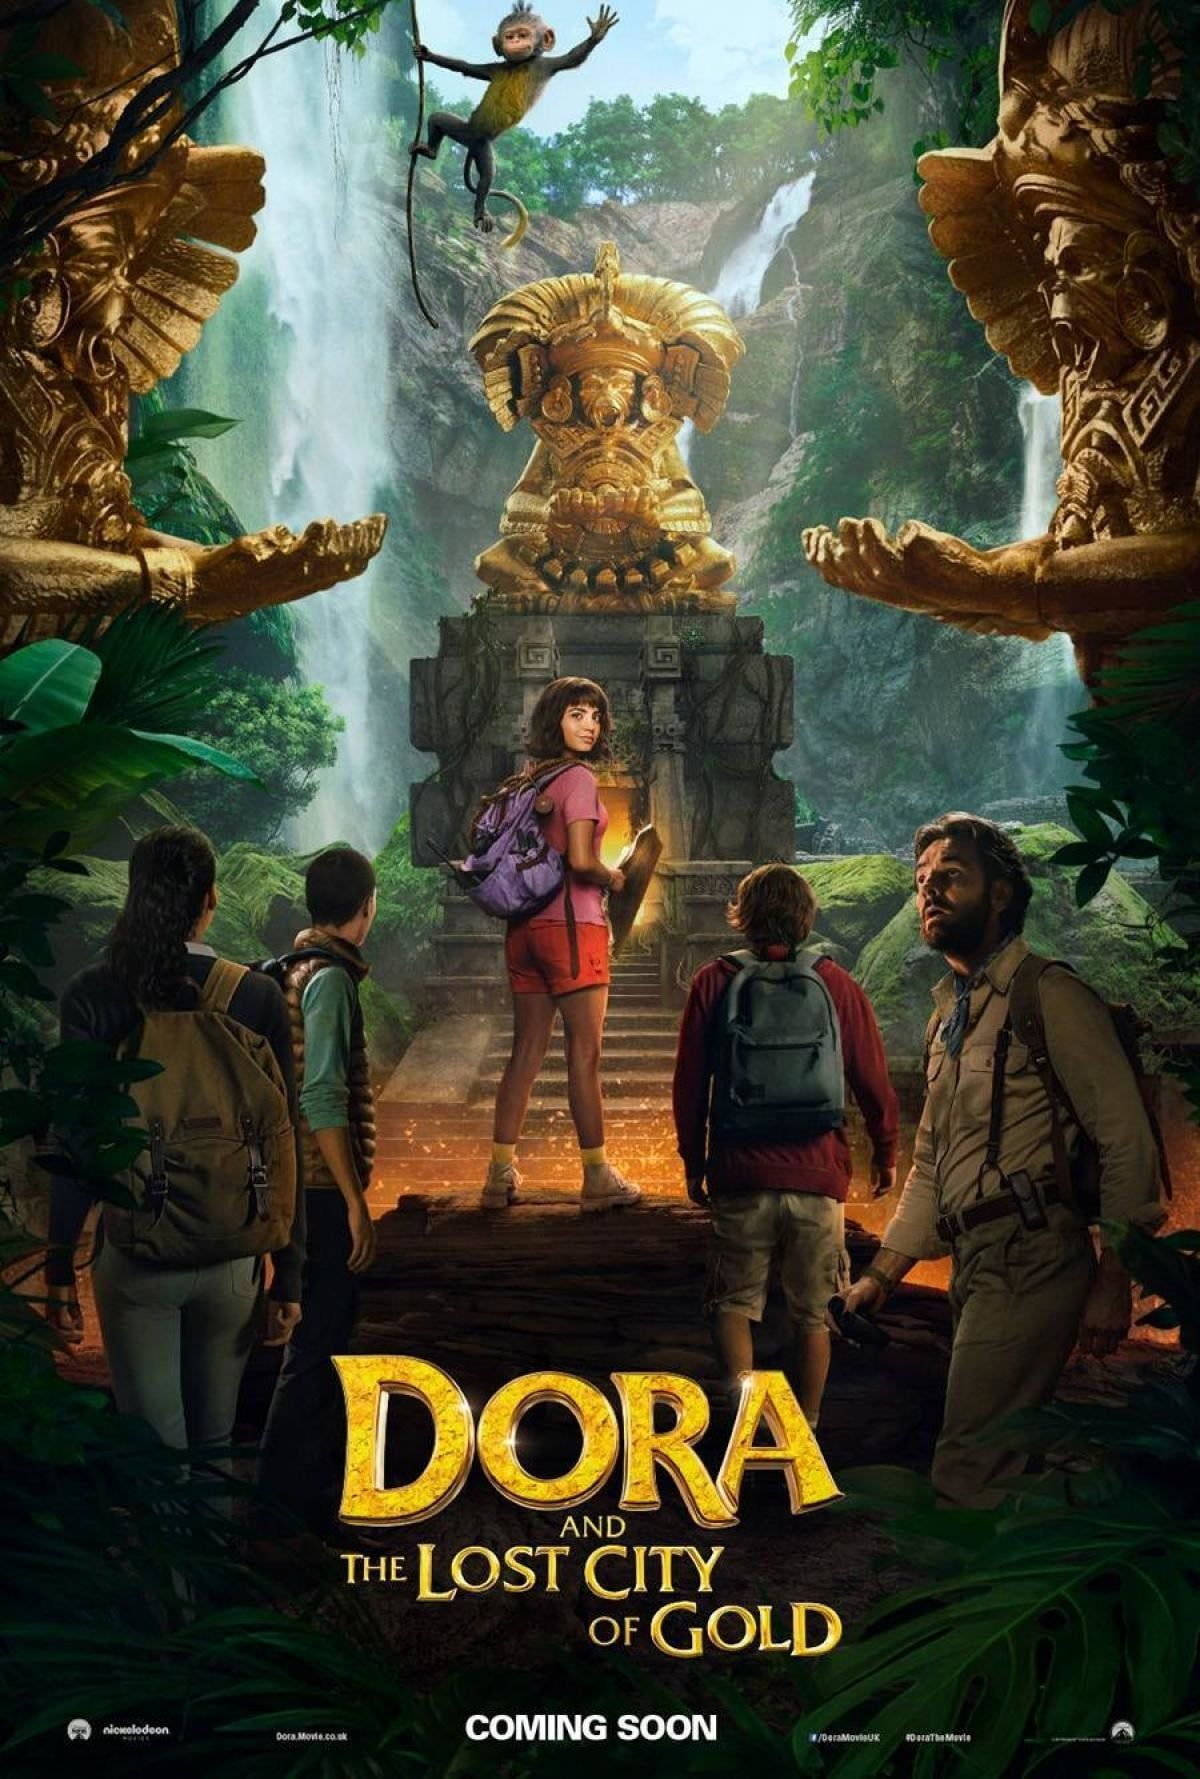 Full Watch Dora And The Lost City Of Gold 2019 Full Online Movie Hd Free English Sub Lost City Of Gold Lost City Gold Movie